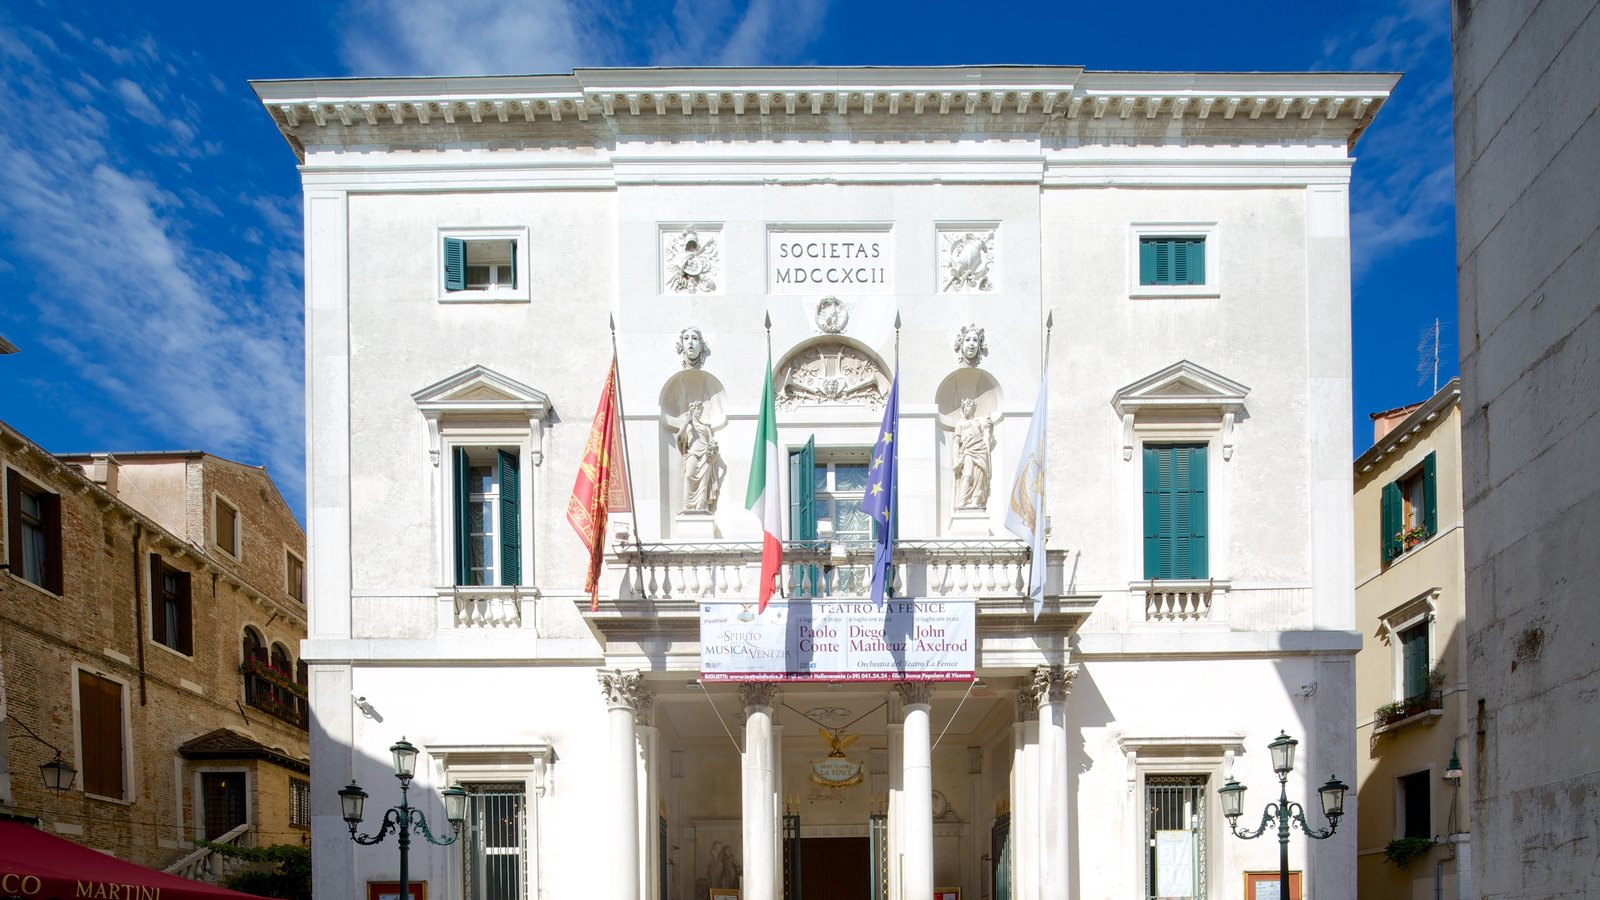 La Fenice Opera House featuring a city and heritage architecture